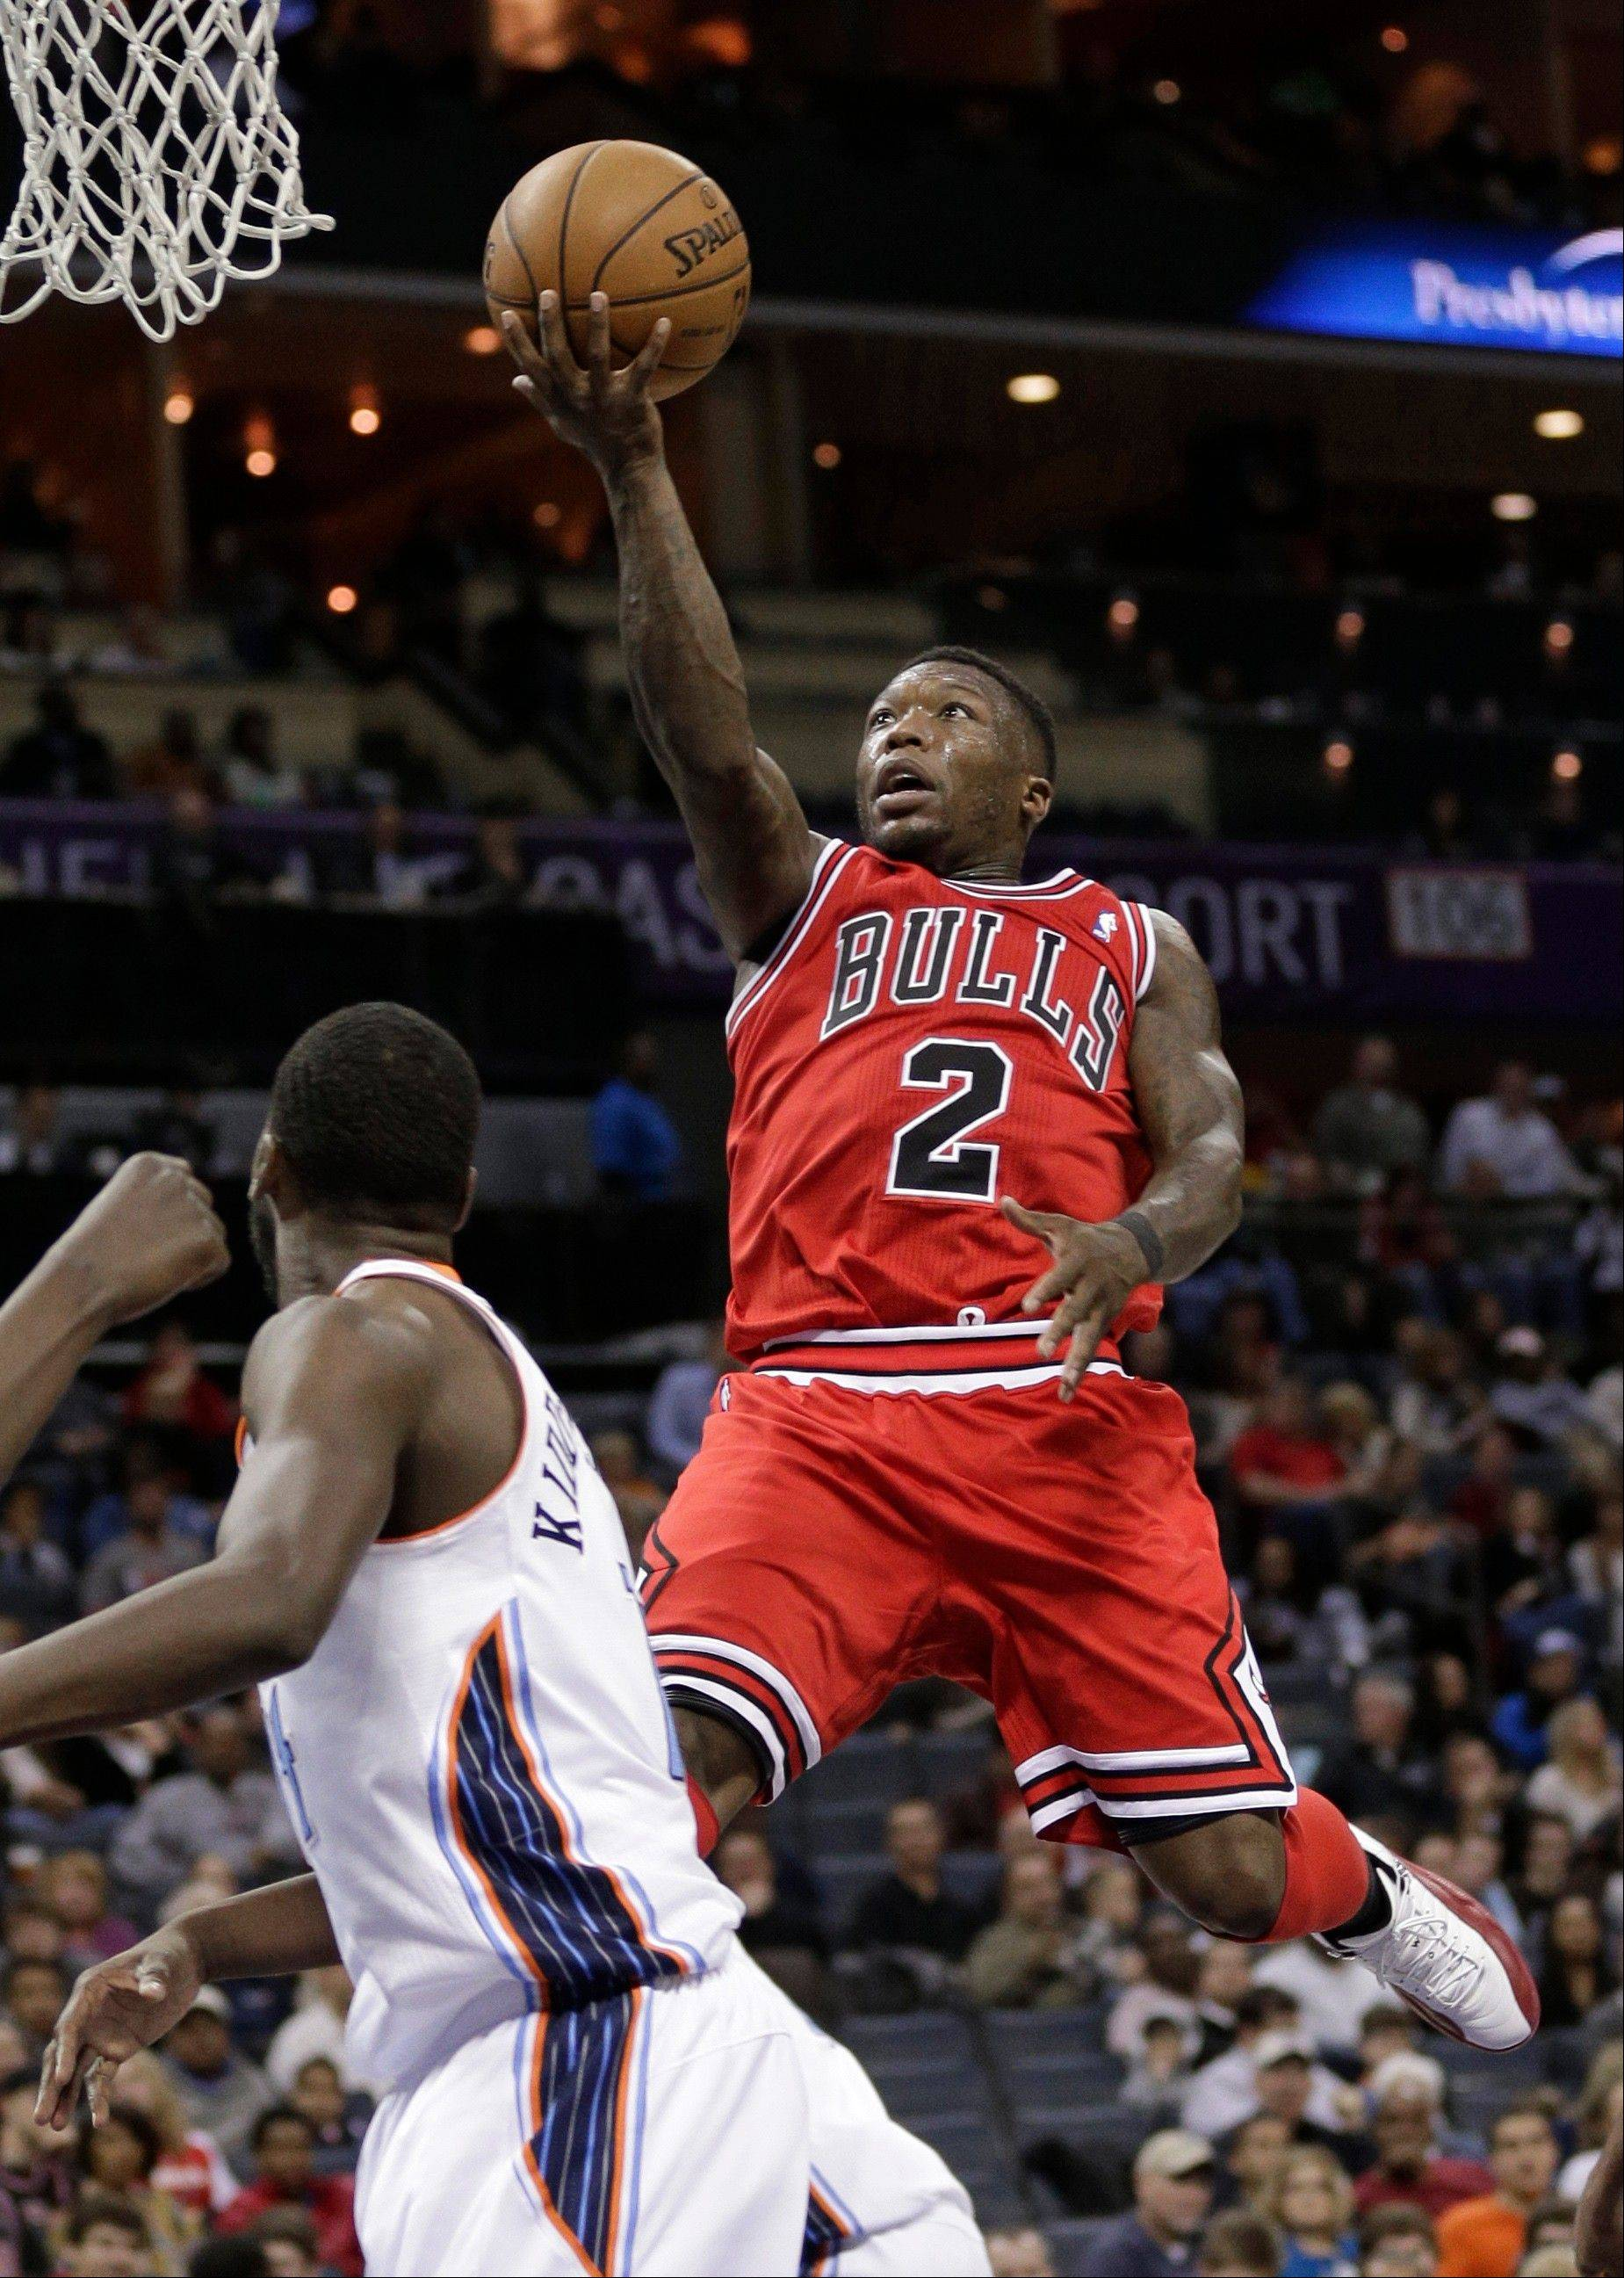 Chicago Bulls' Nate Robinson (2) drives to the basket against Charlotte Bobcats' Michael Kidd-Gilchrist during the second half of an NBA basketball game in Charlotte, N.C., Friday, Feb. 22, 2013. The Bulls won 105-75.